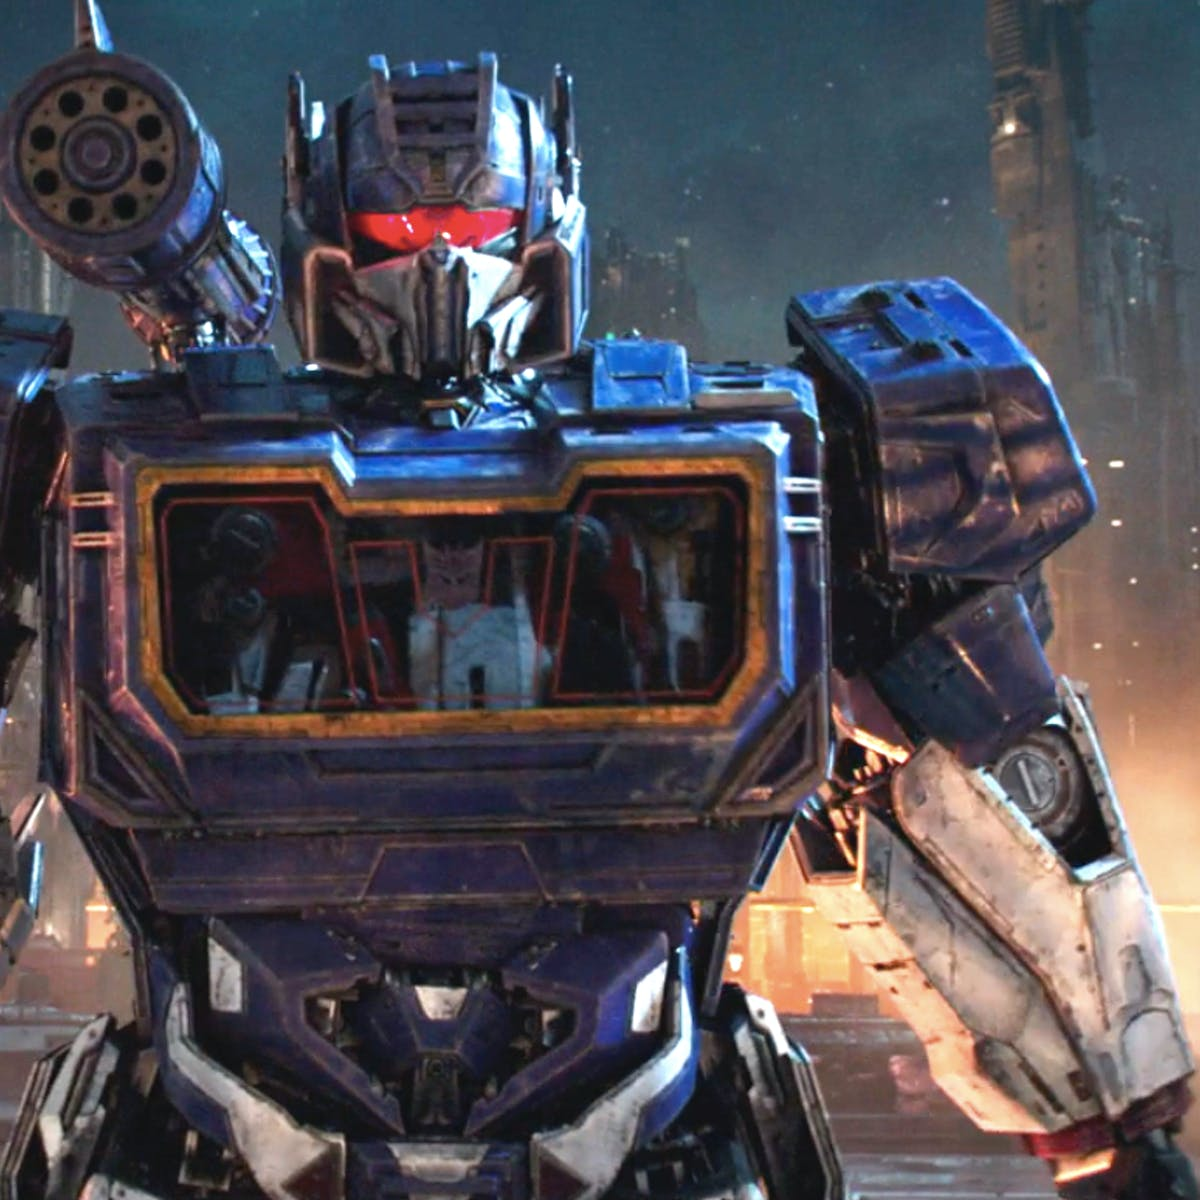 G1 Transformers Come to Life in Emotional New 'Bumblebee' Trailer